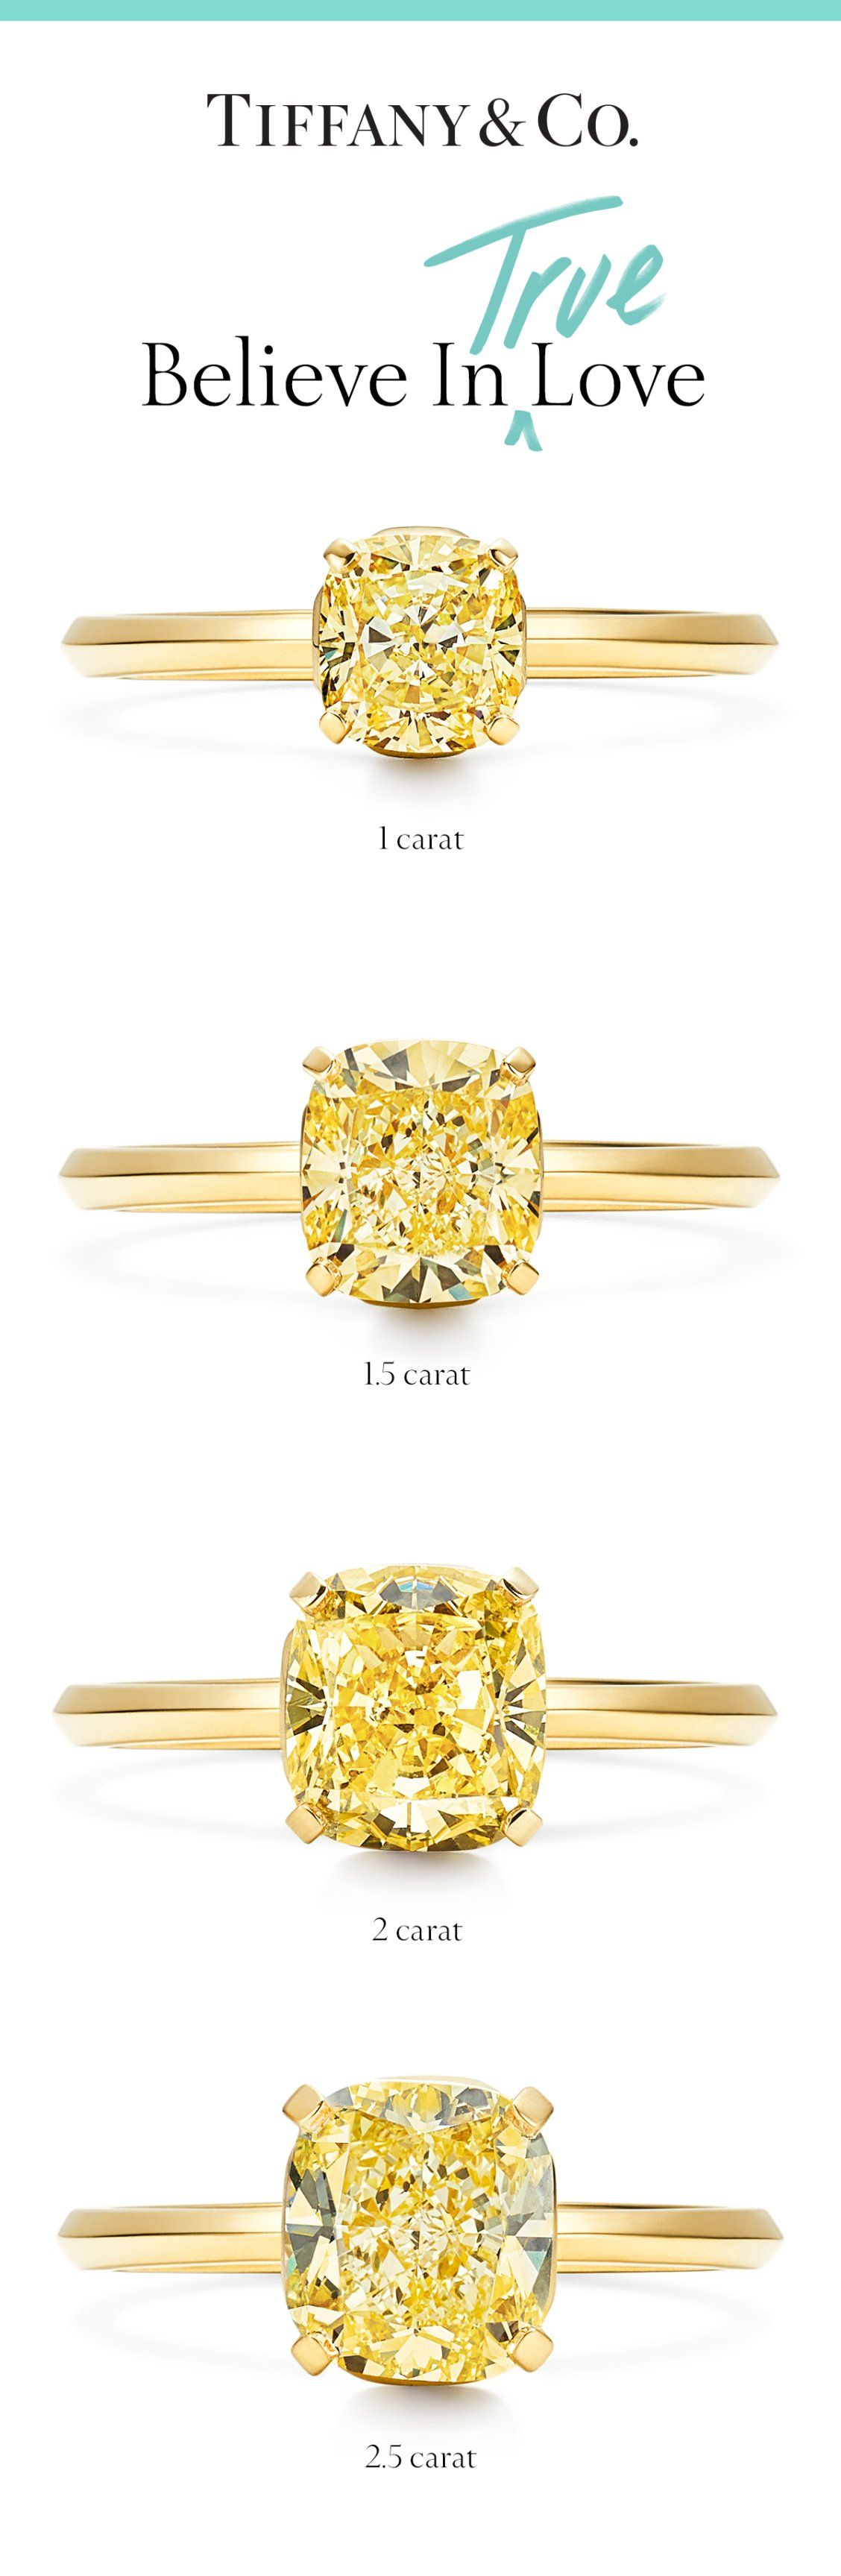 bd6e15cf9 Introducing Tiffany True—our first new engagement ring design in nearly a  decade, in 18k gold with a fancy yellow cushion modified brilliant diamond.